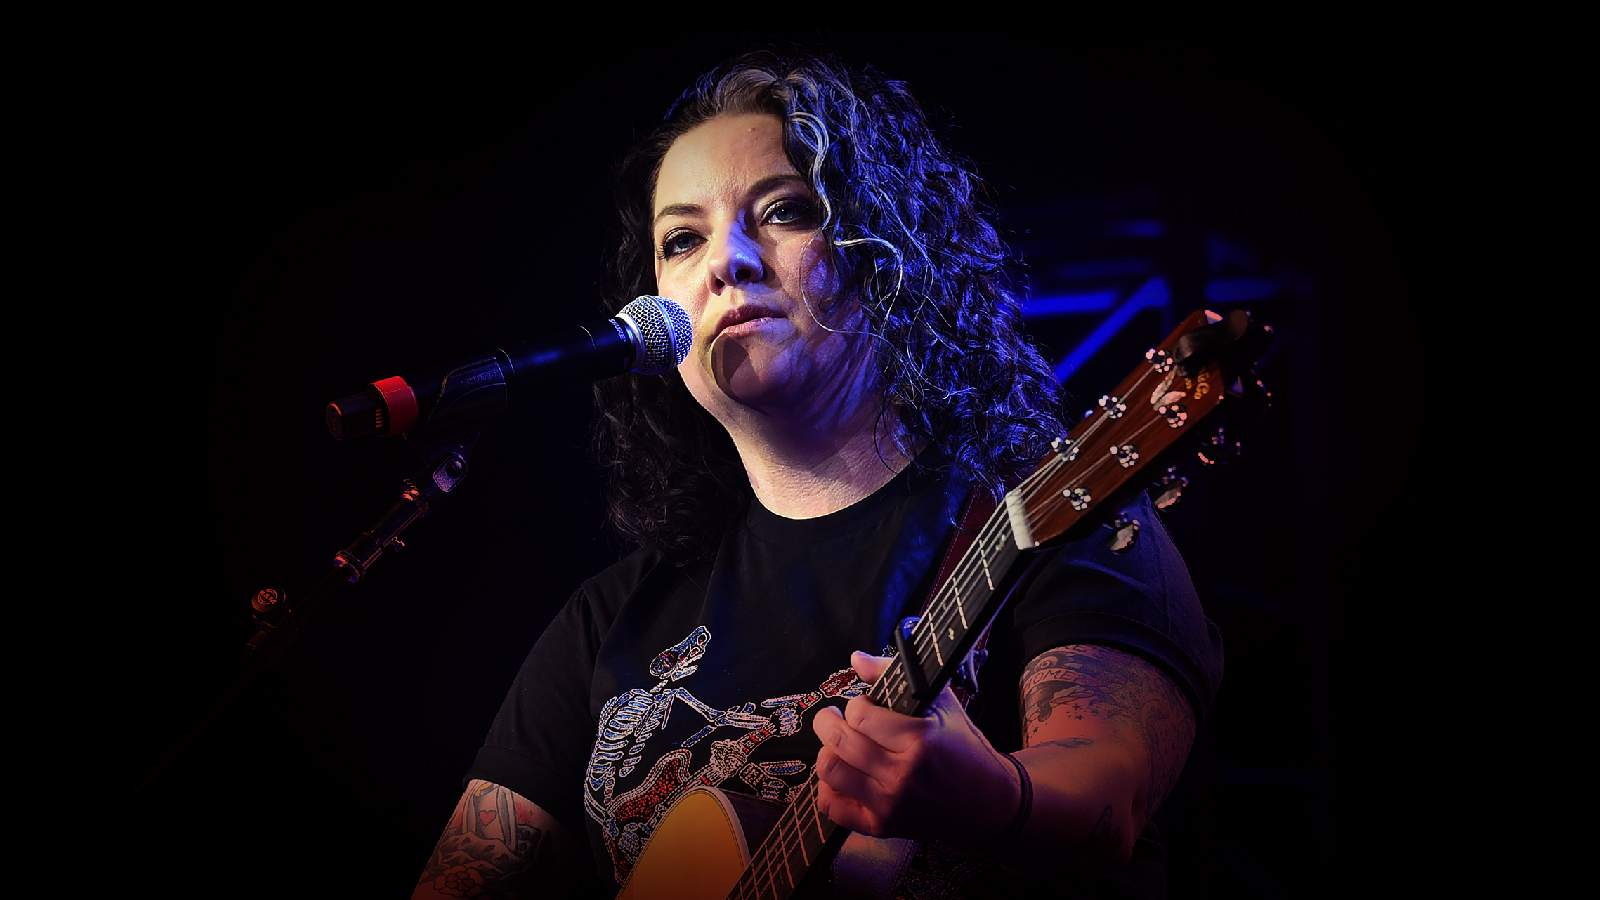 Ashley McBryde (Rescheduled from 7/23/2020)